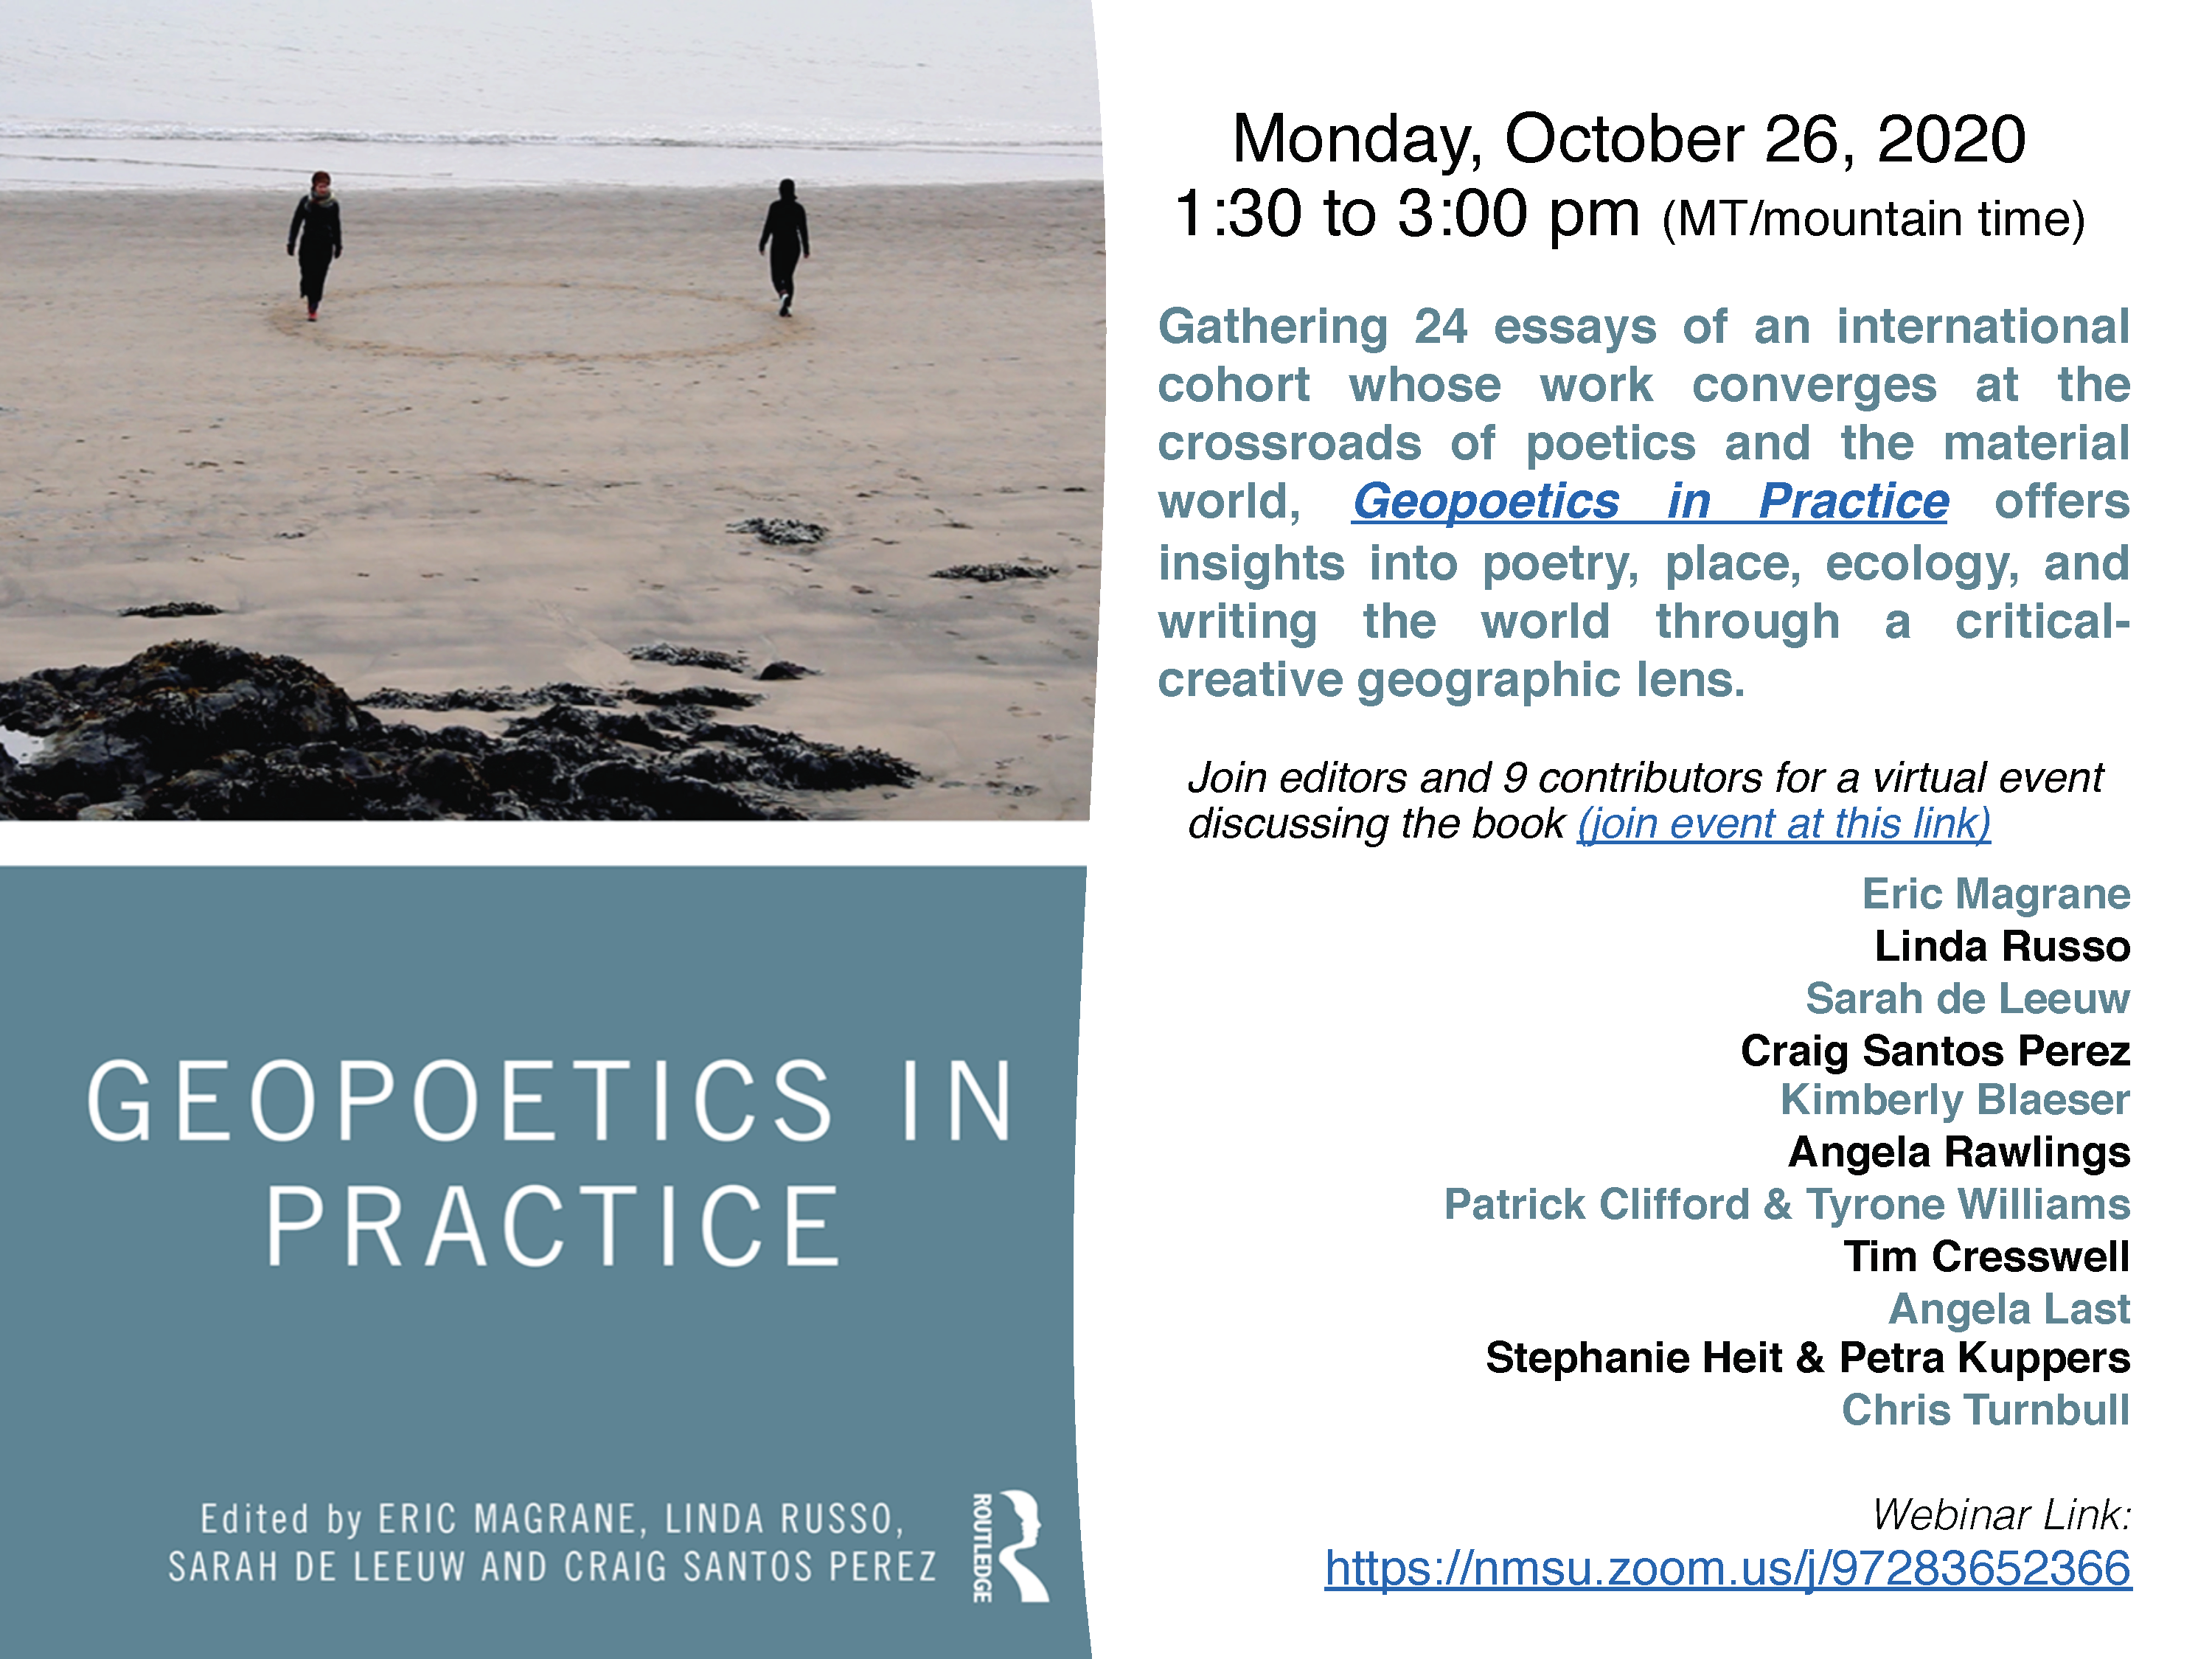 Geopoetics_in_Practice_eventflyer_10-26-20.png